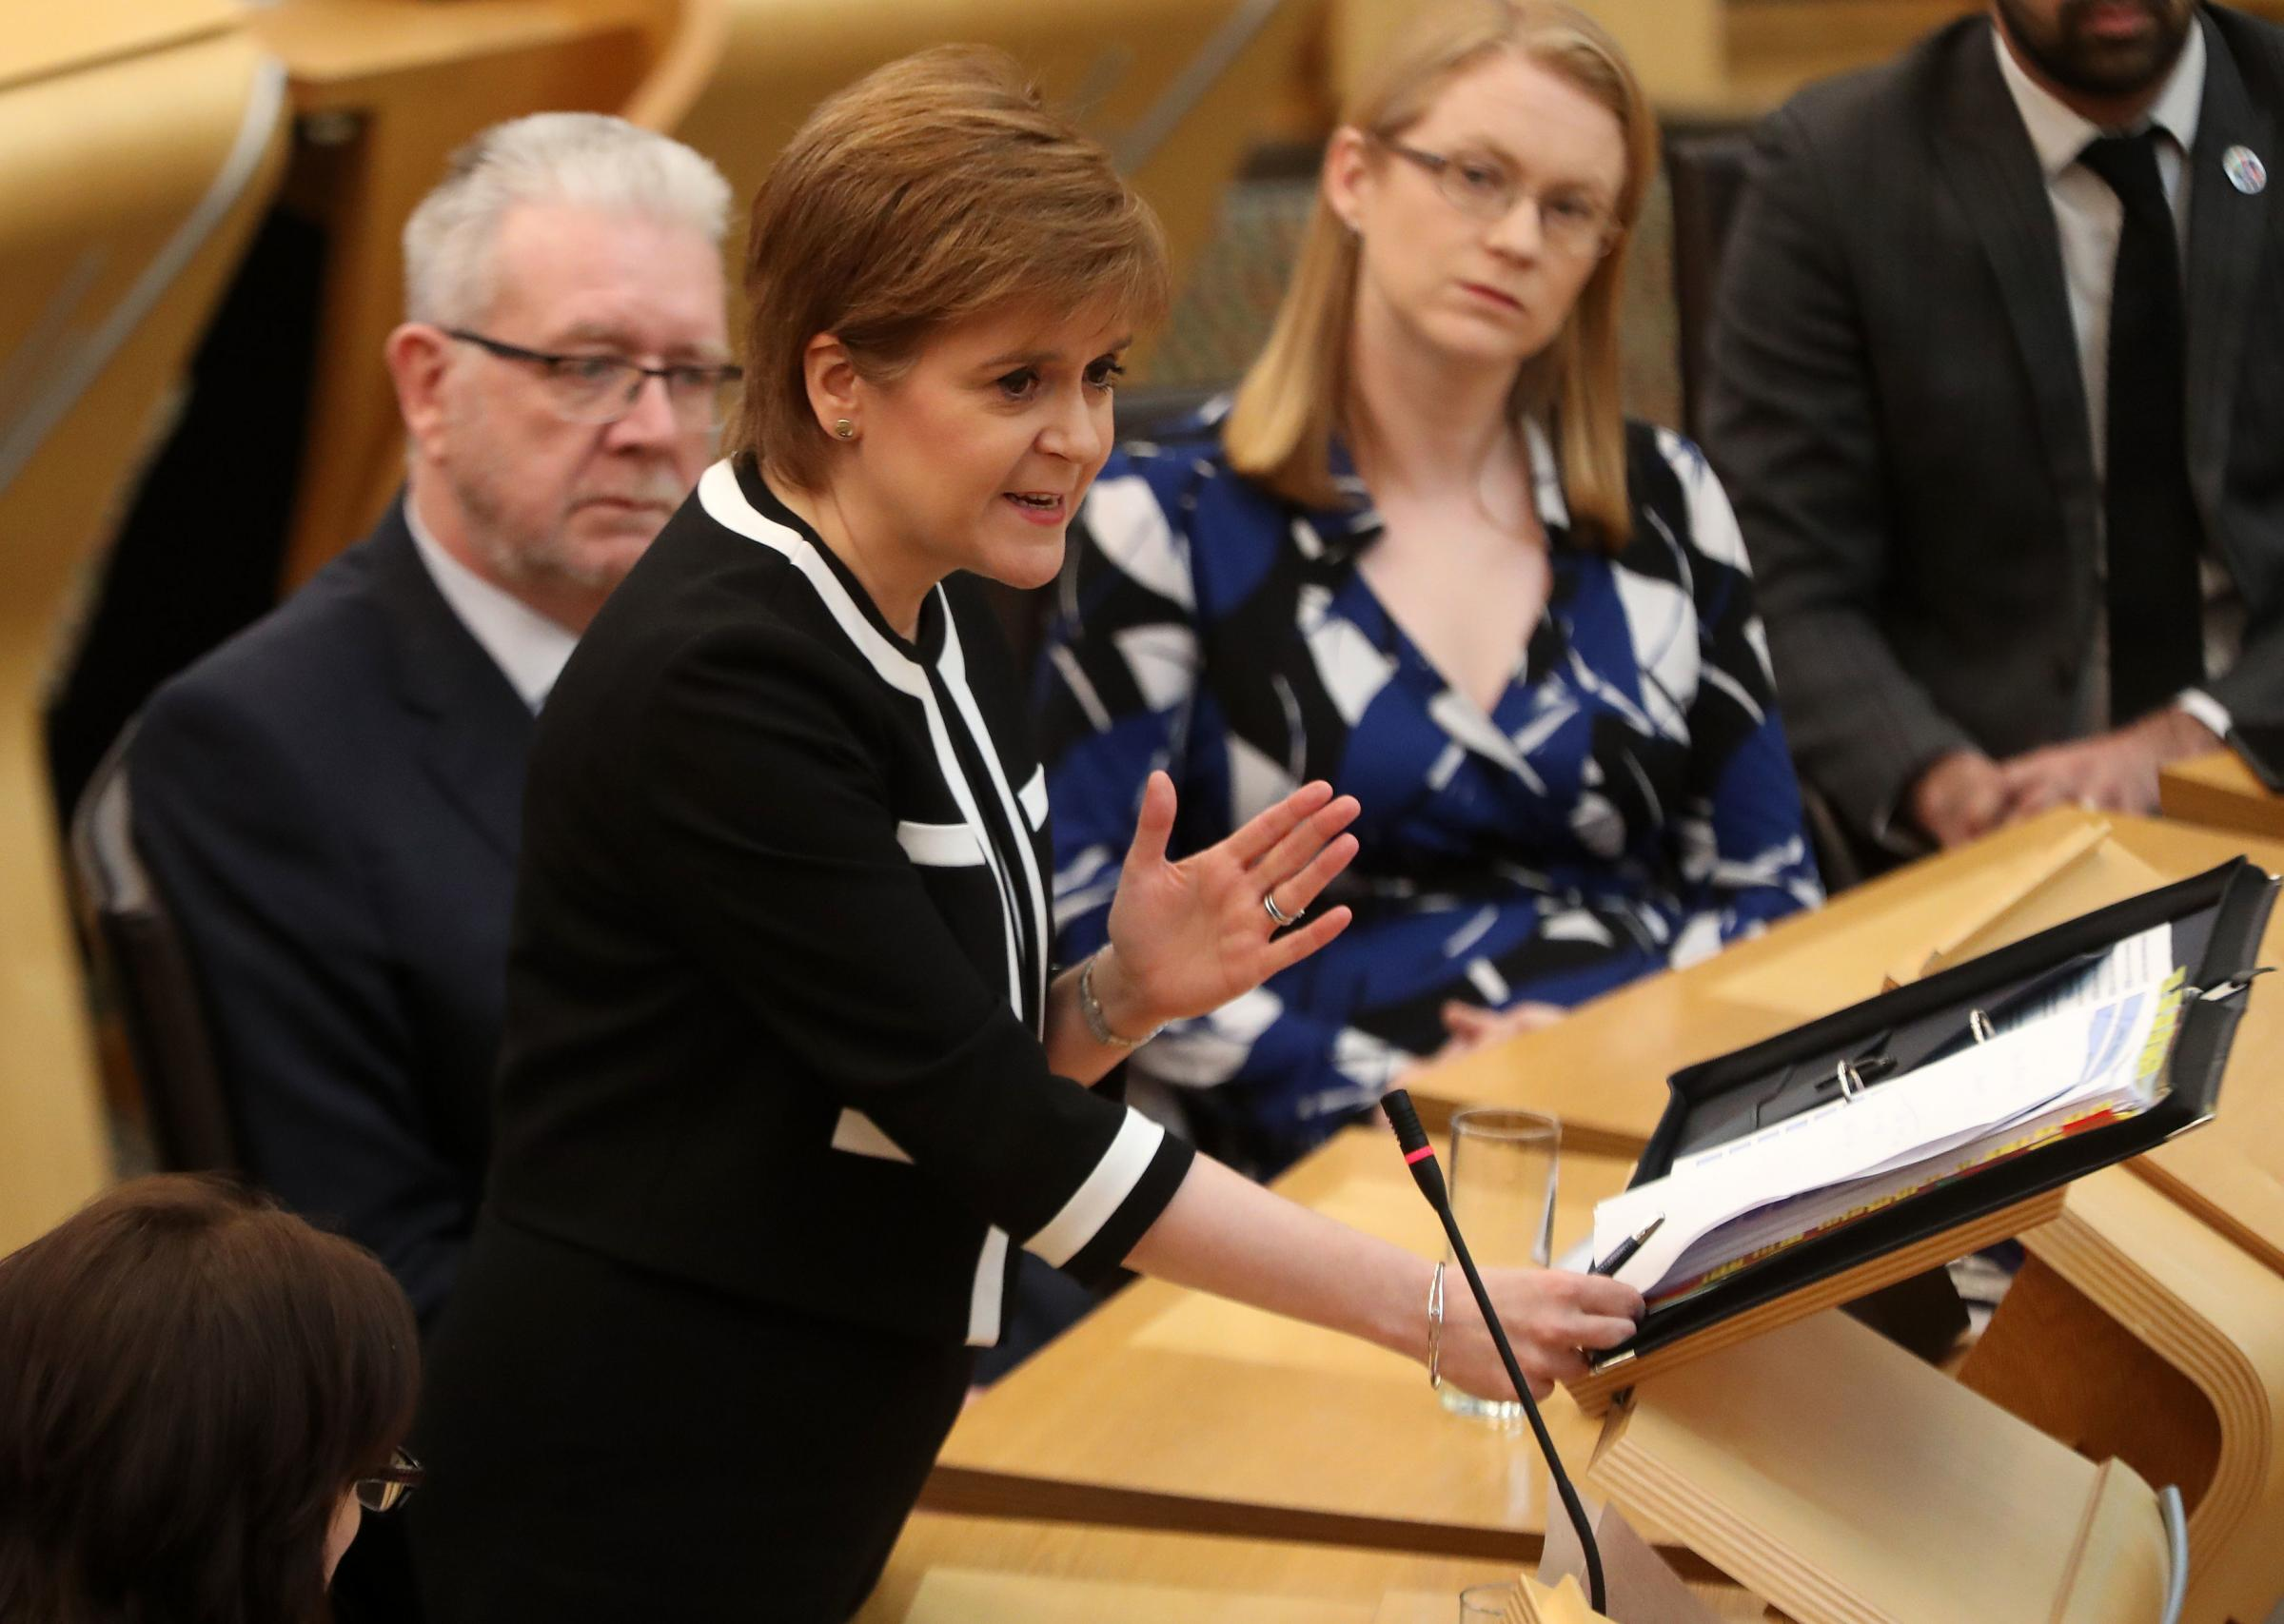 First Minister Nicola Sturgeon agreed with the point being made – but had a clarification to offer